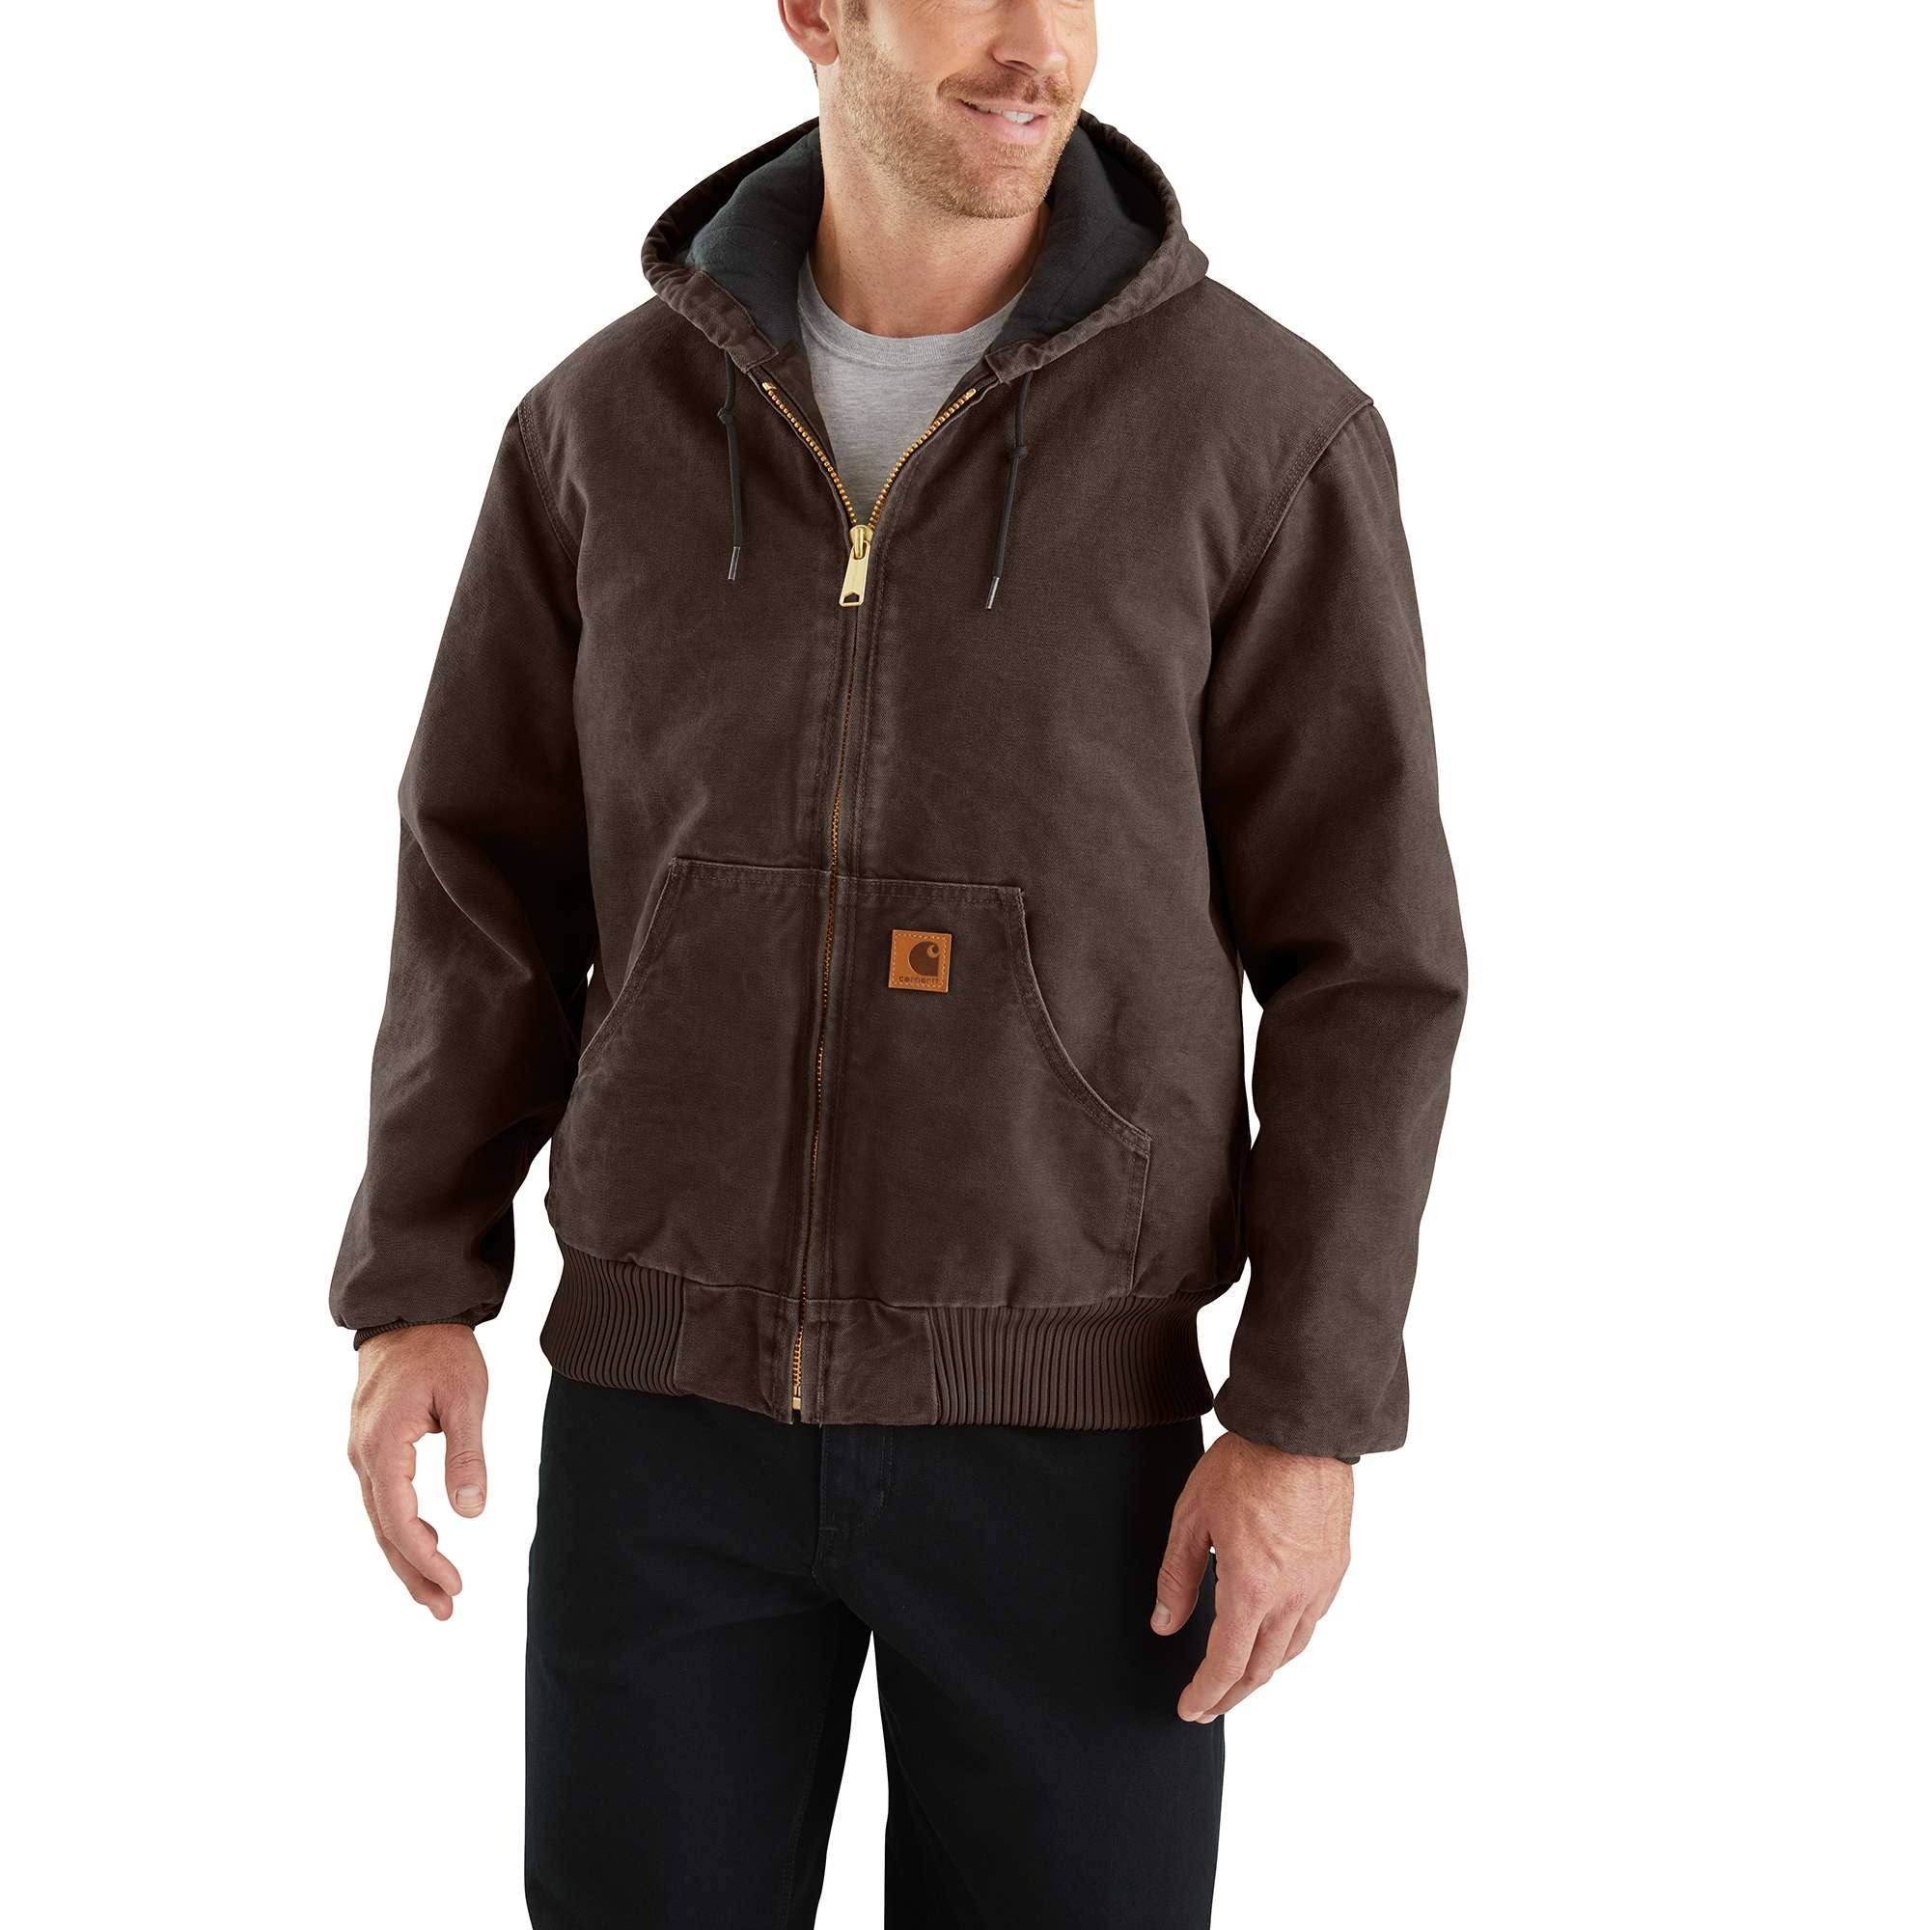 Carhartt Men's Quilted Flannel Lined Sandstone Active Jacket - Xxx-Large, Dark Brown